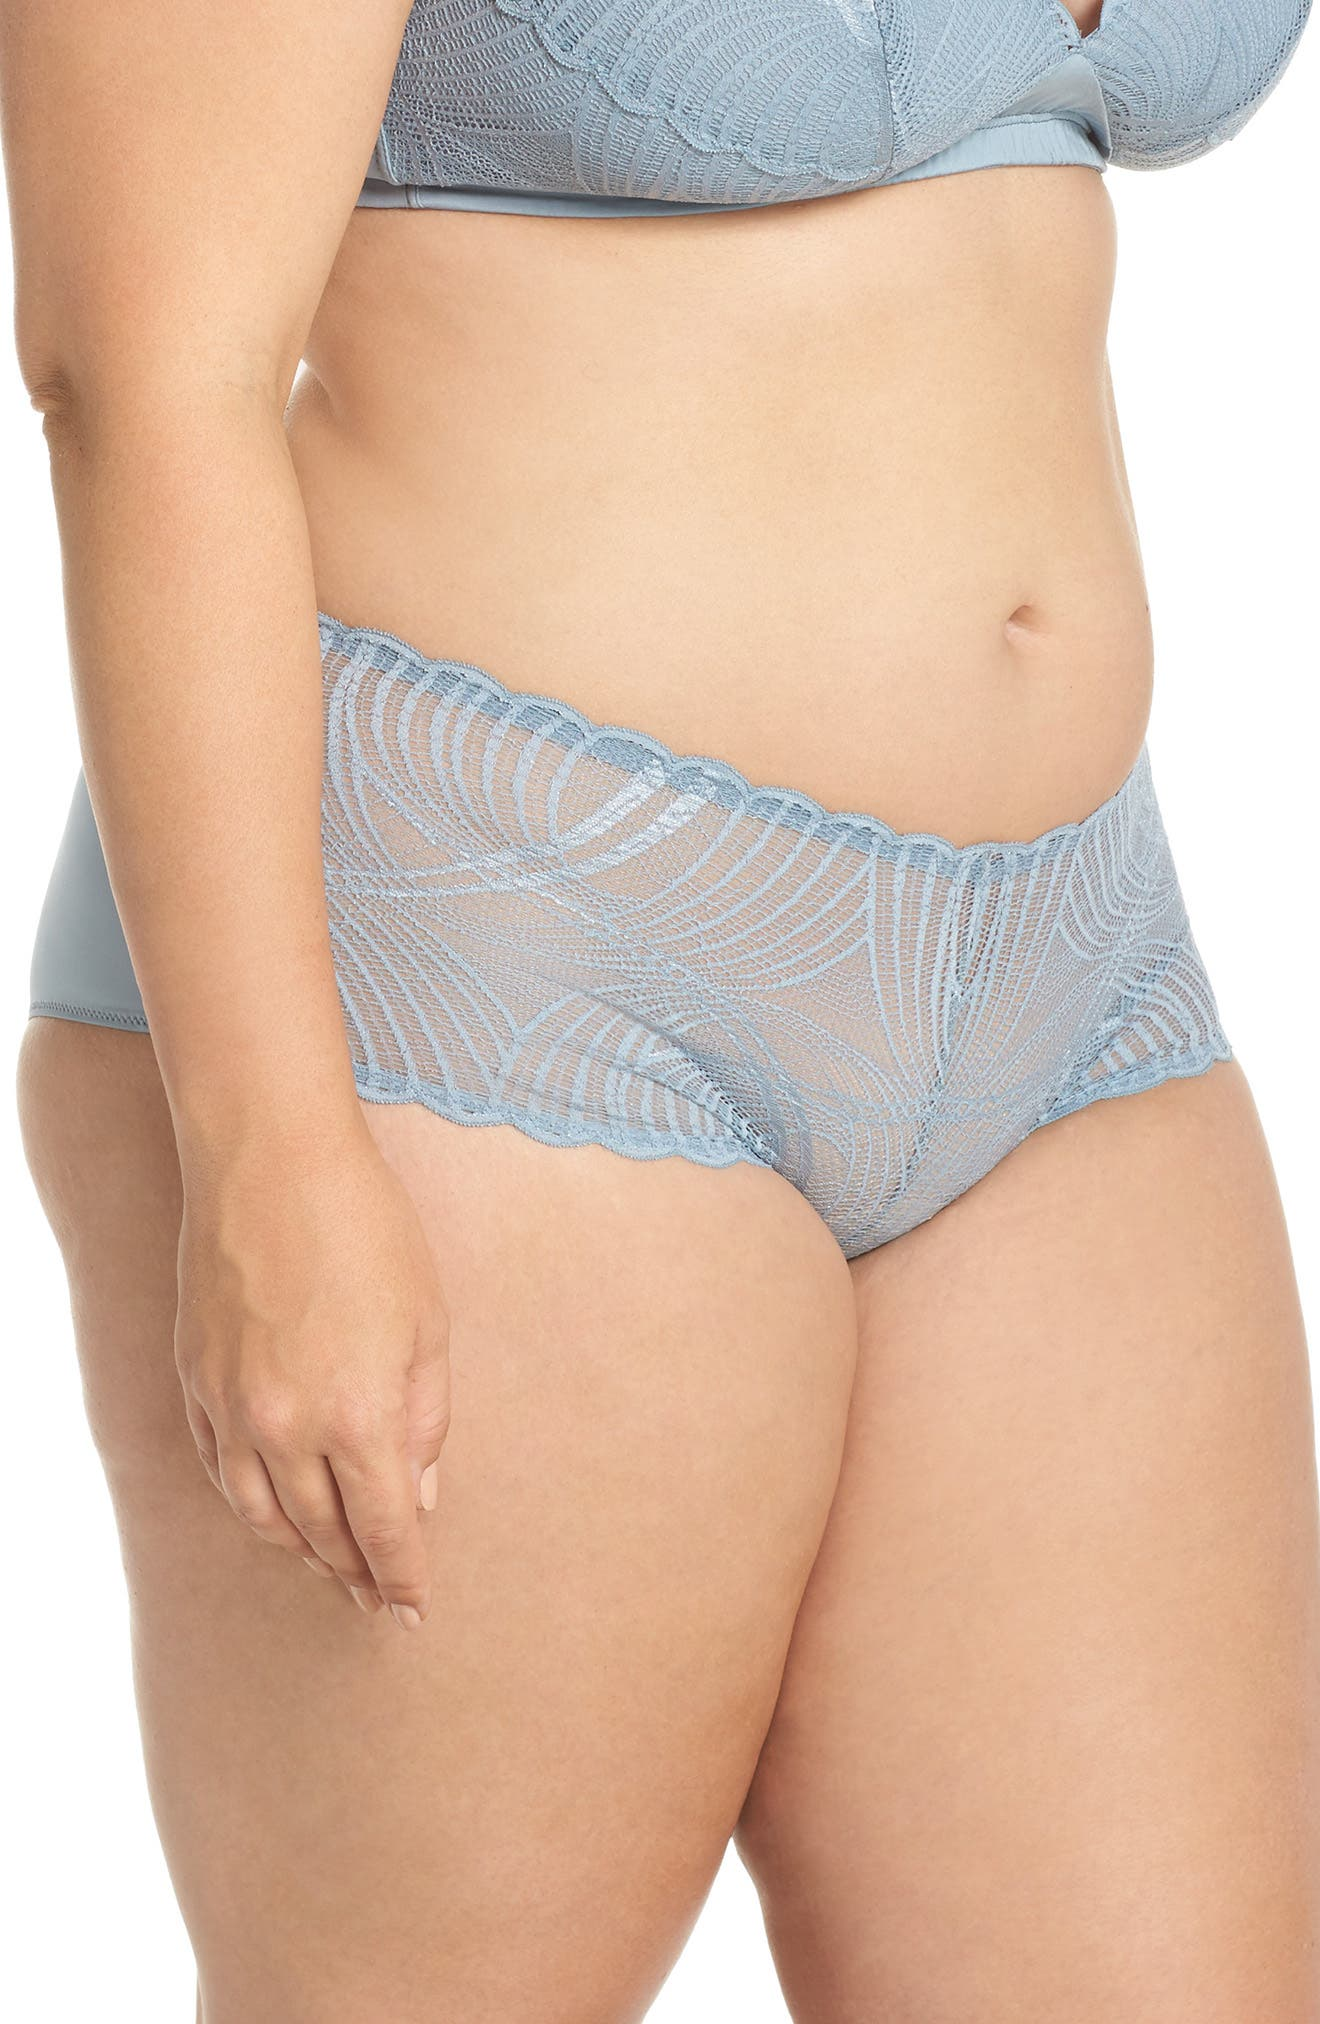 Minoa Low Rise Boyshorts,                             Alternate thumbnail 3, color,                             409